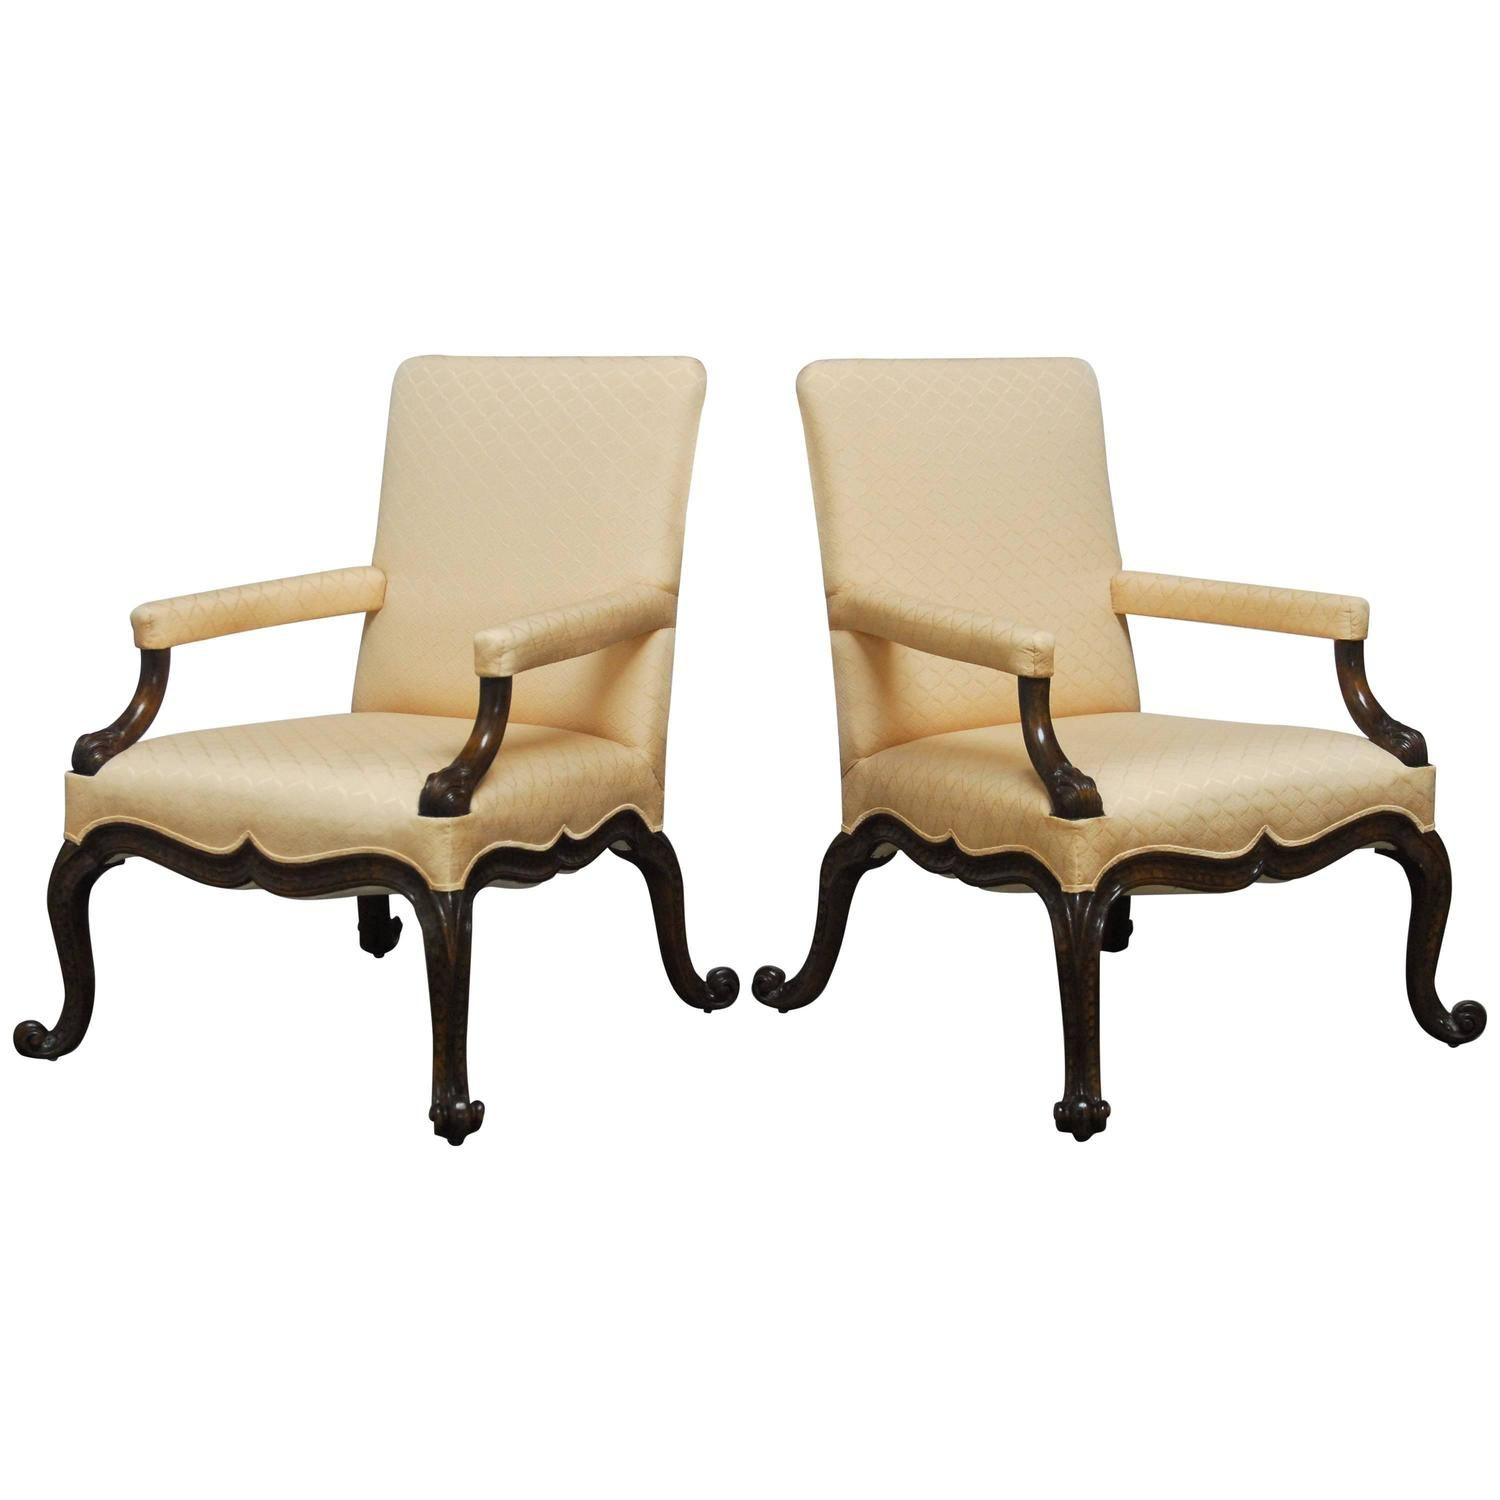 george ii style gainsborough library chairs | armchairs and modern